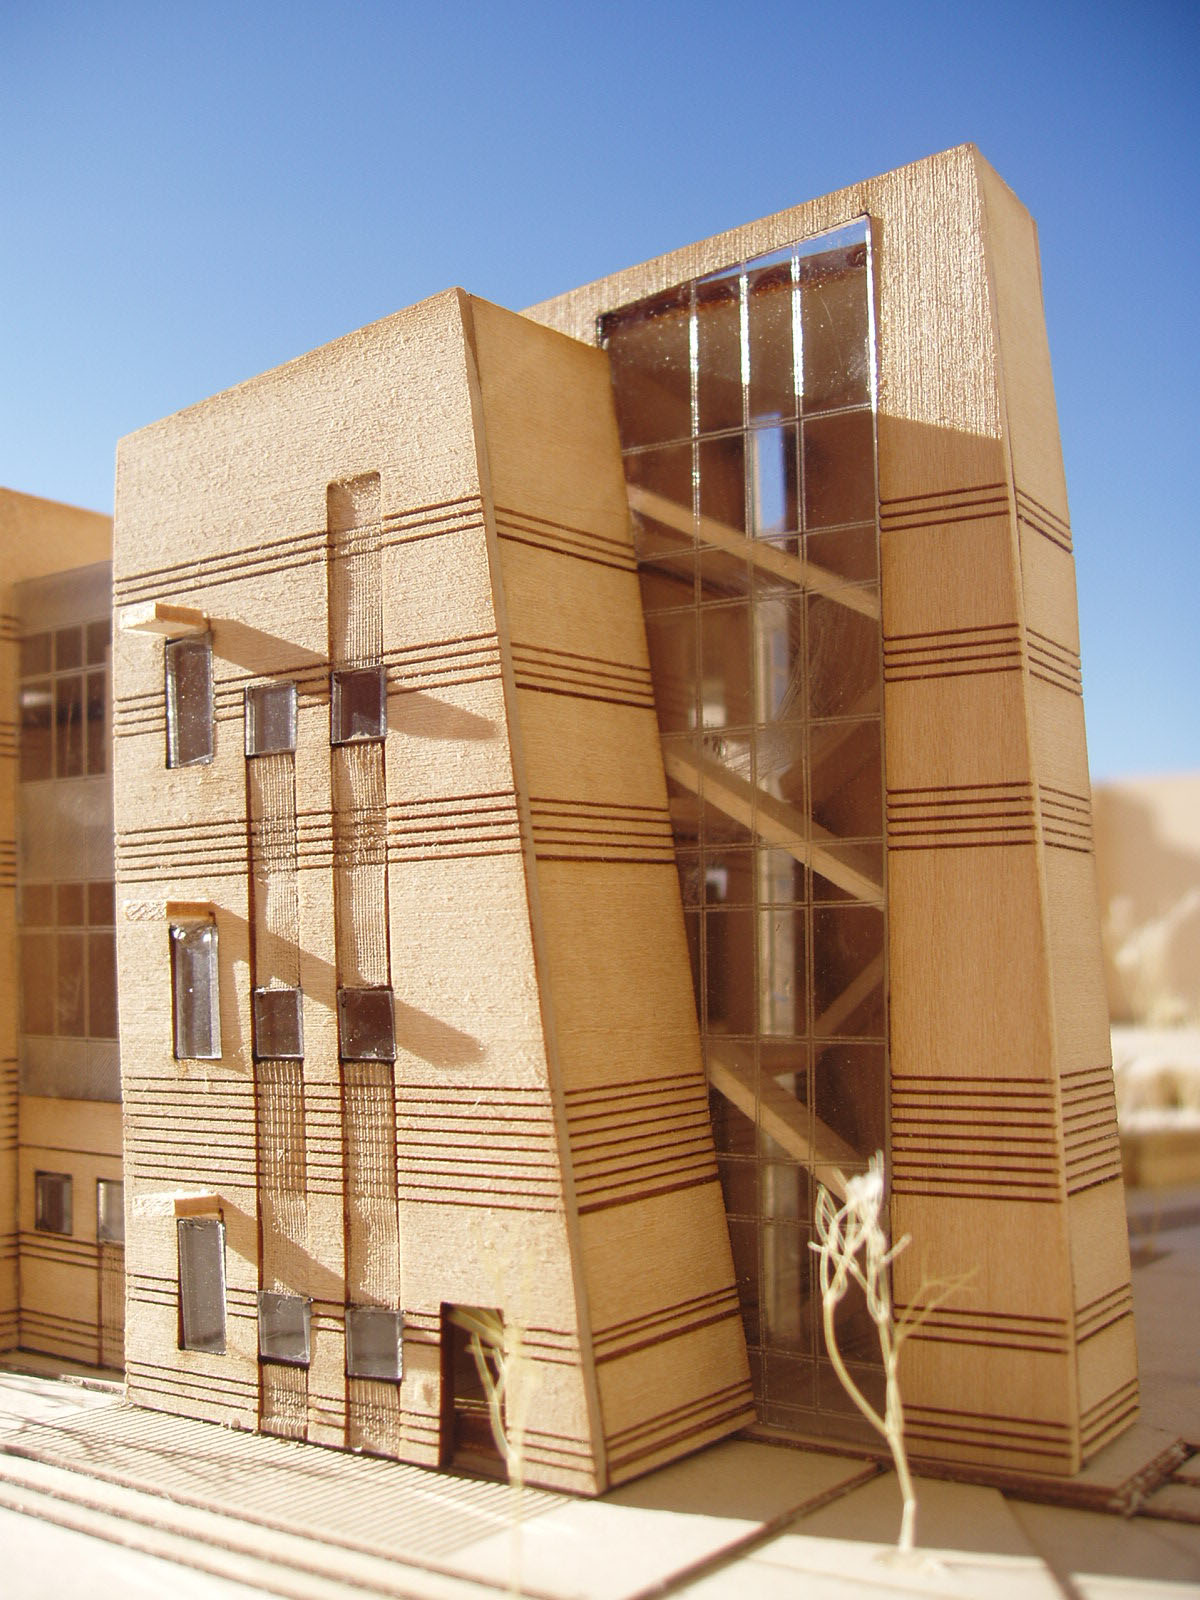 Detailed, wood scale model of the early childhood education building.